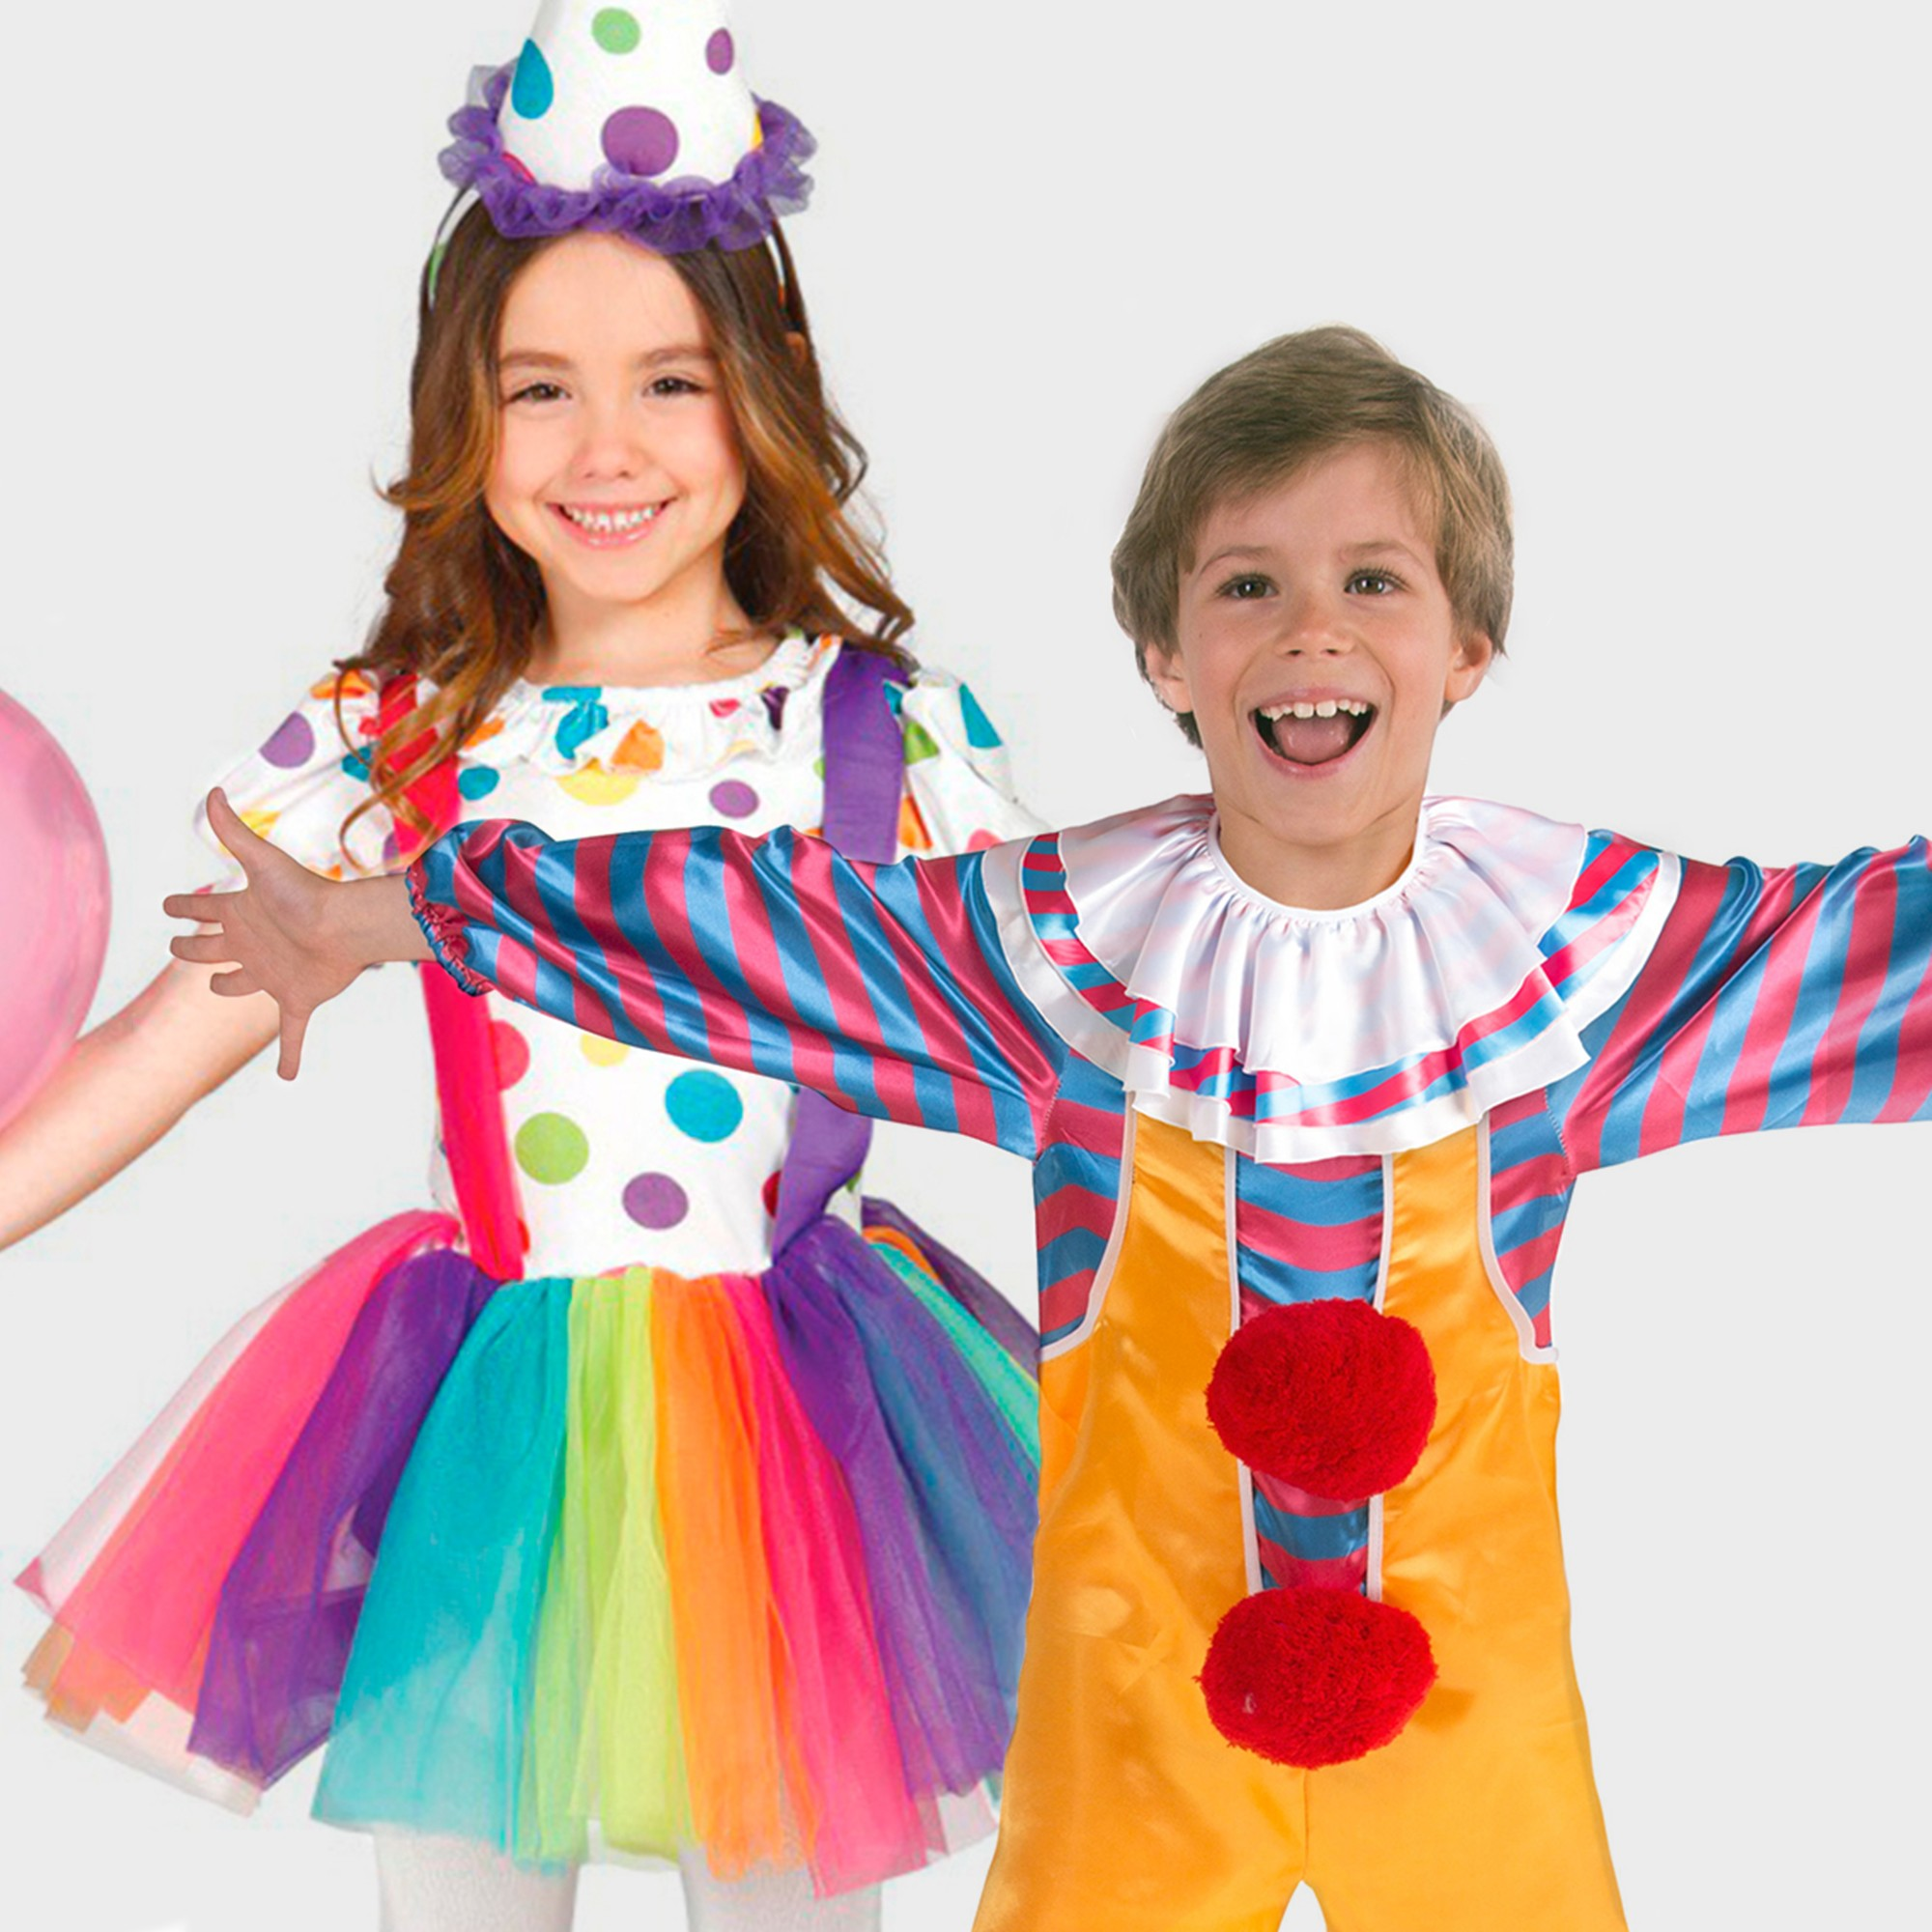 Clowns and funny costumes